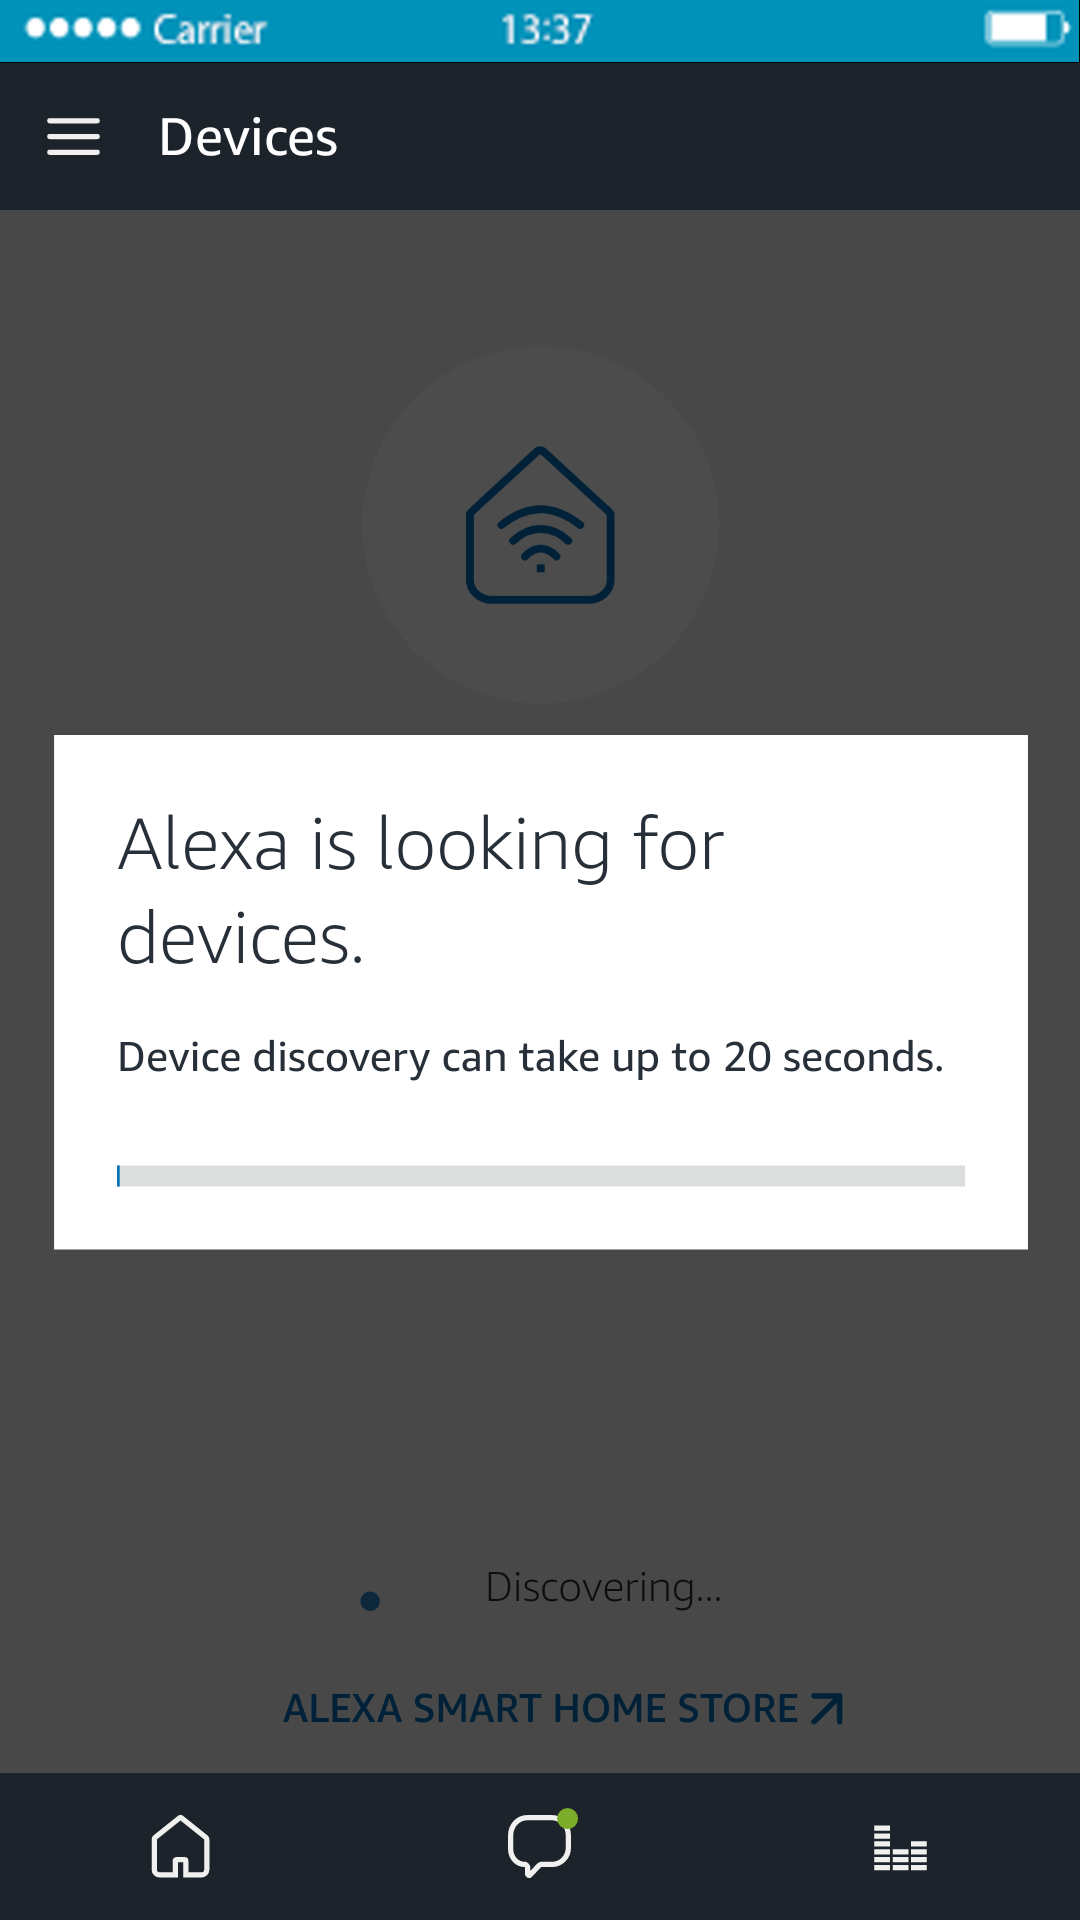 10_-_Alexa_is_looking_for_devices.png